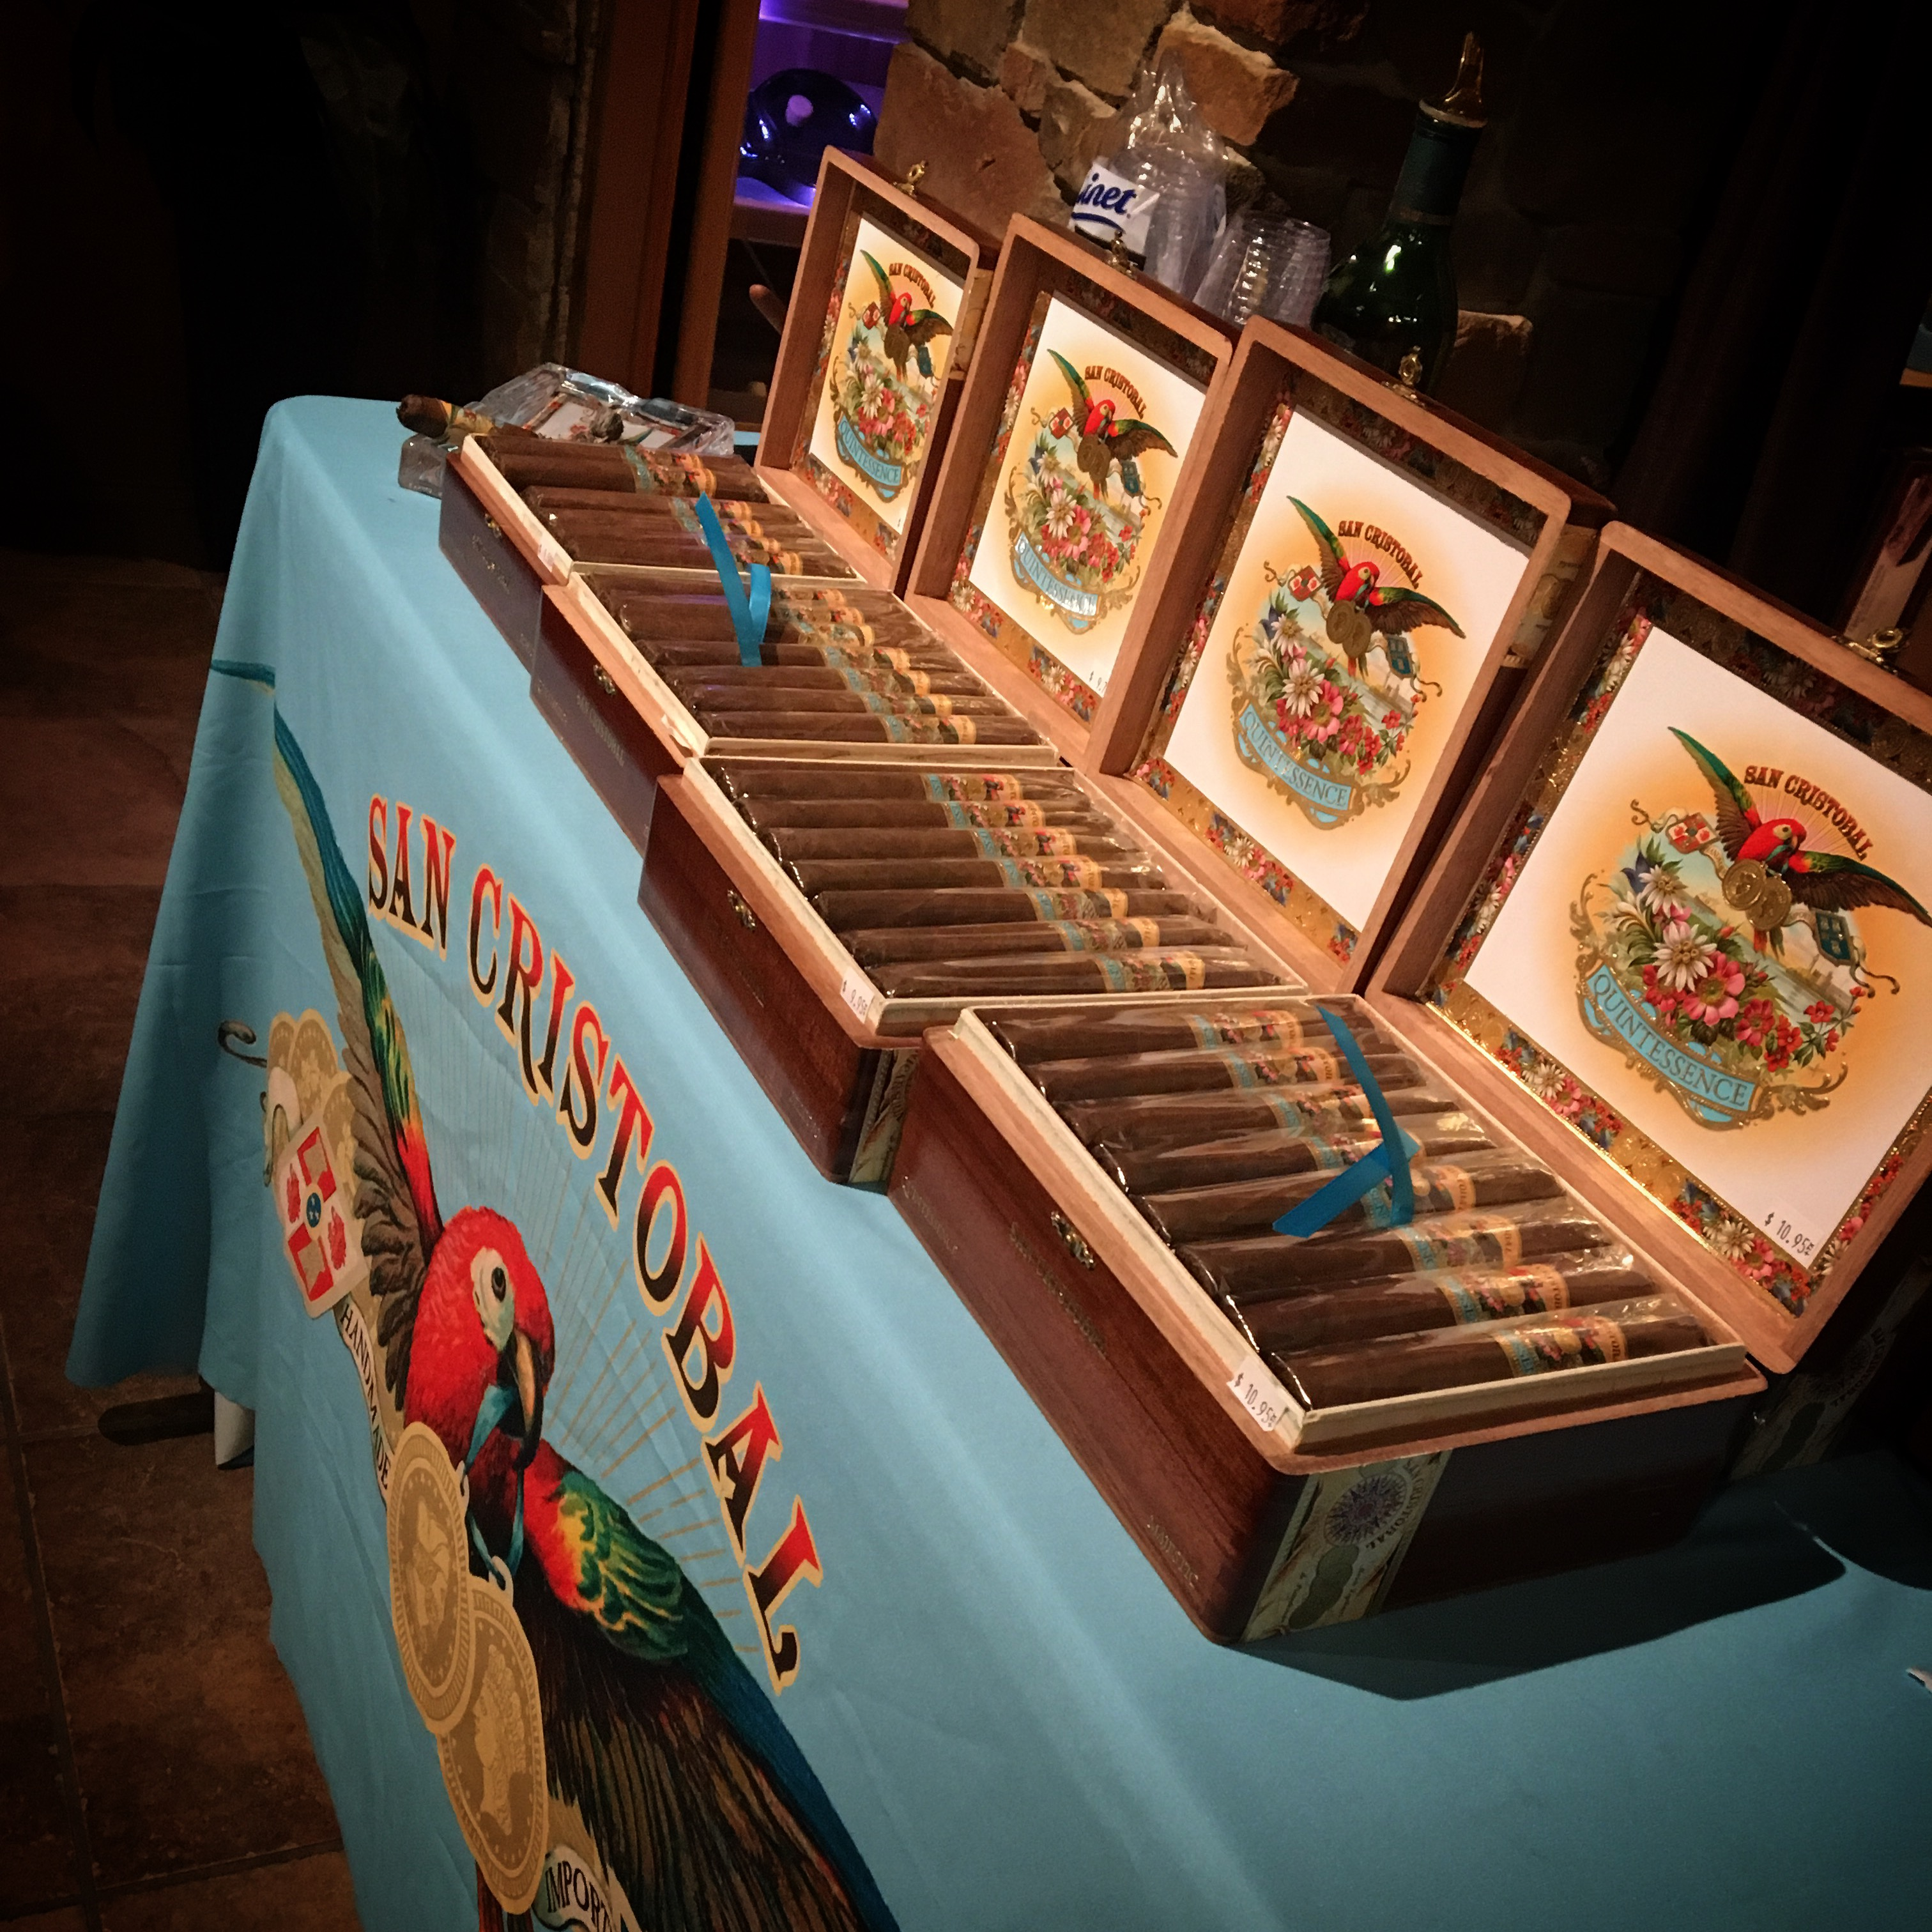 San Cristobal Cigars